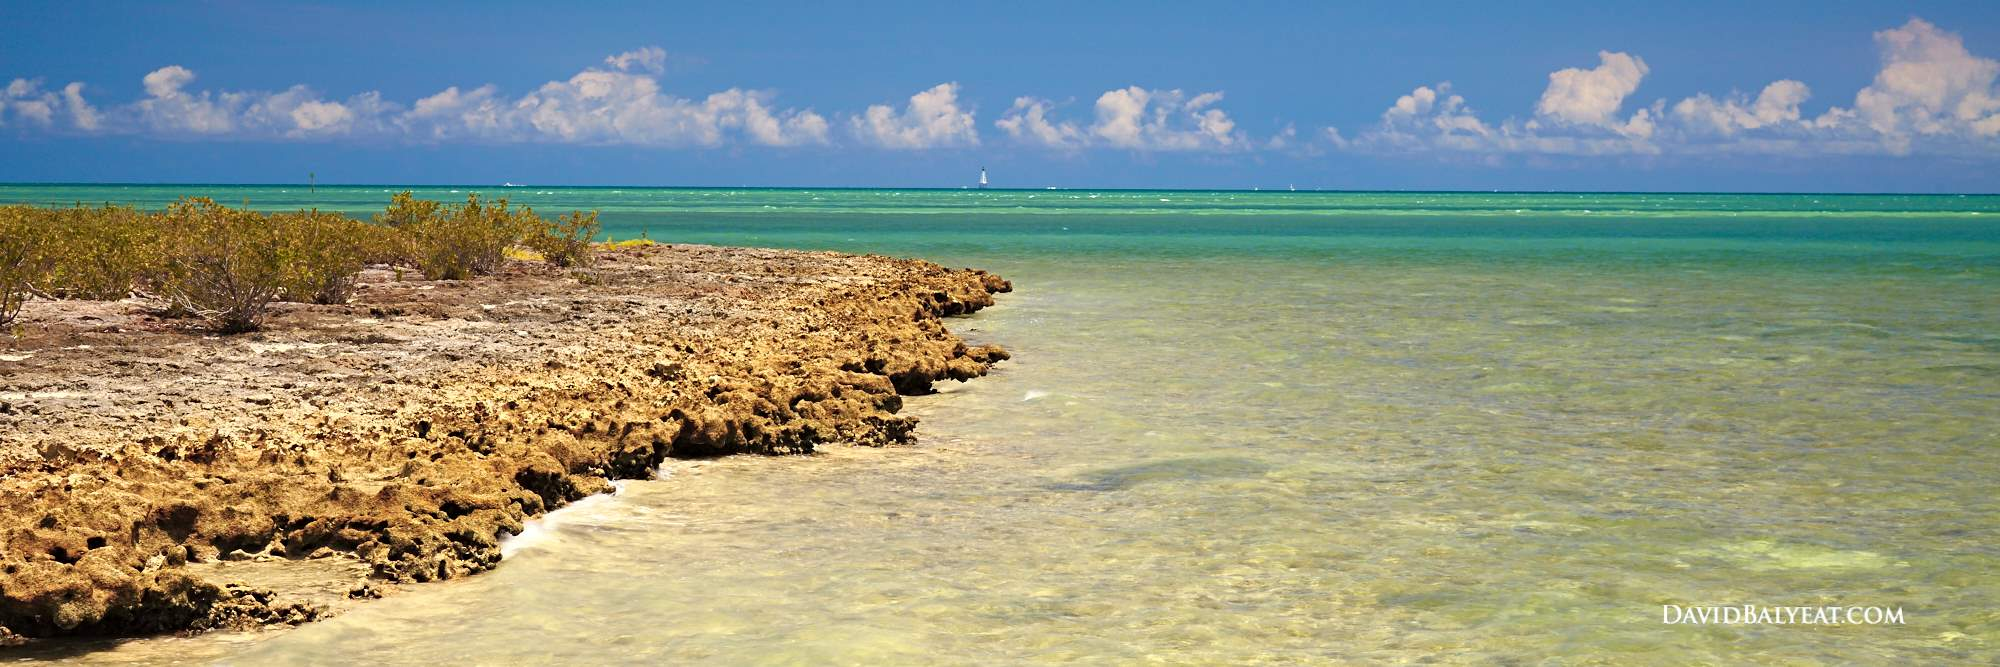 Florida Keys crystal clear waters Indian Key Historic State Park high definition HD photography